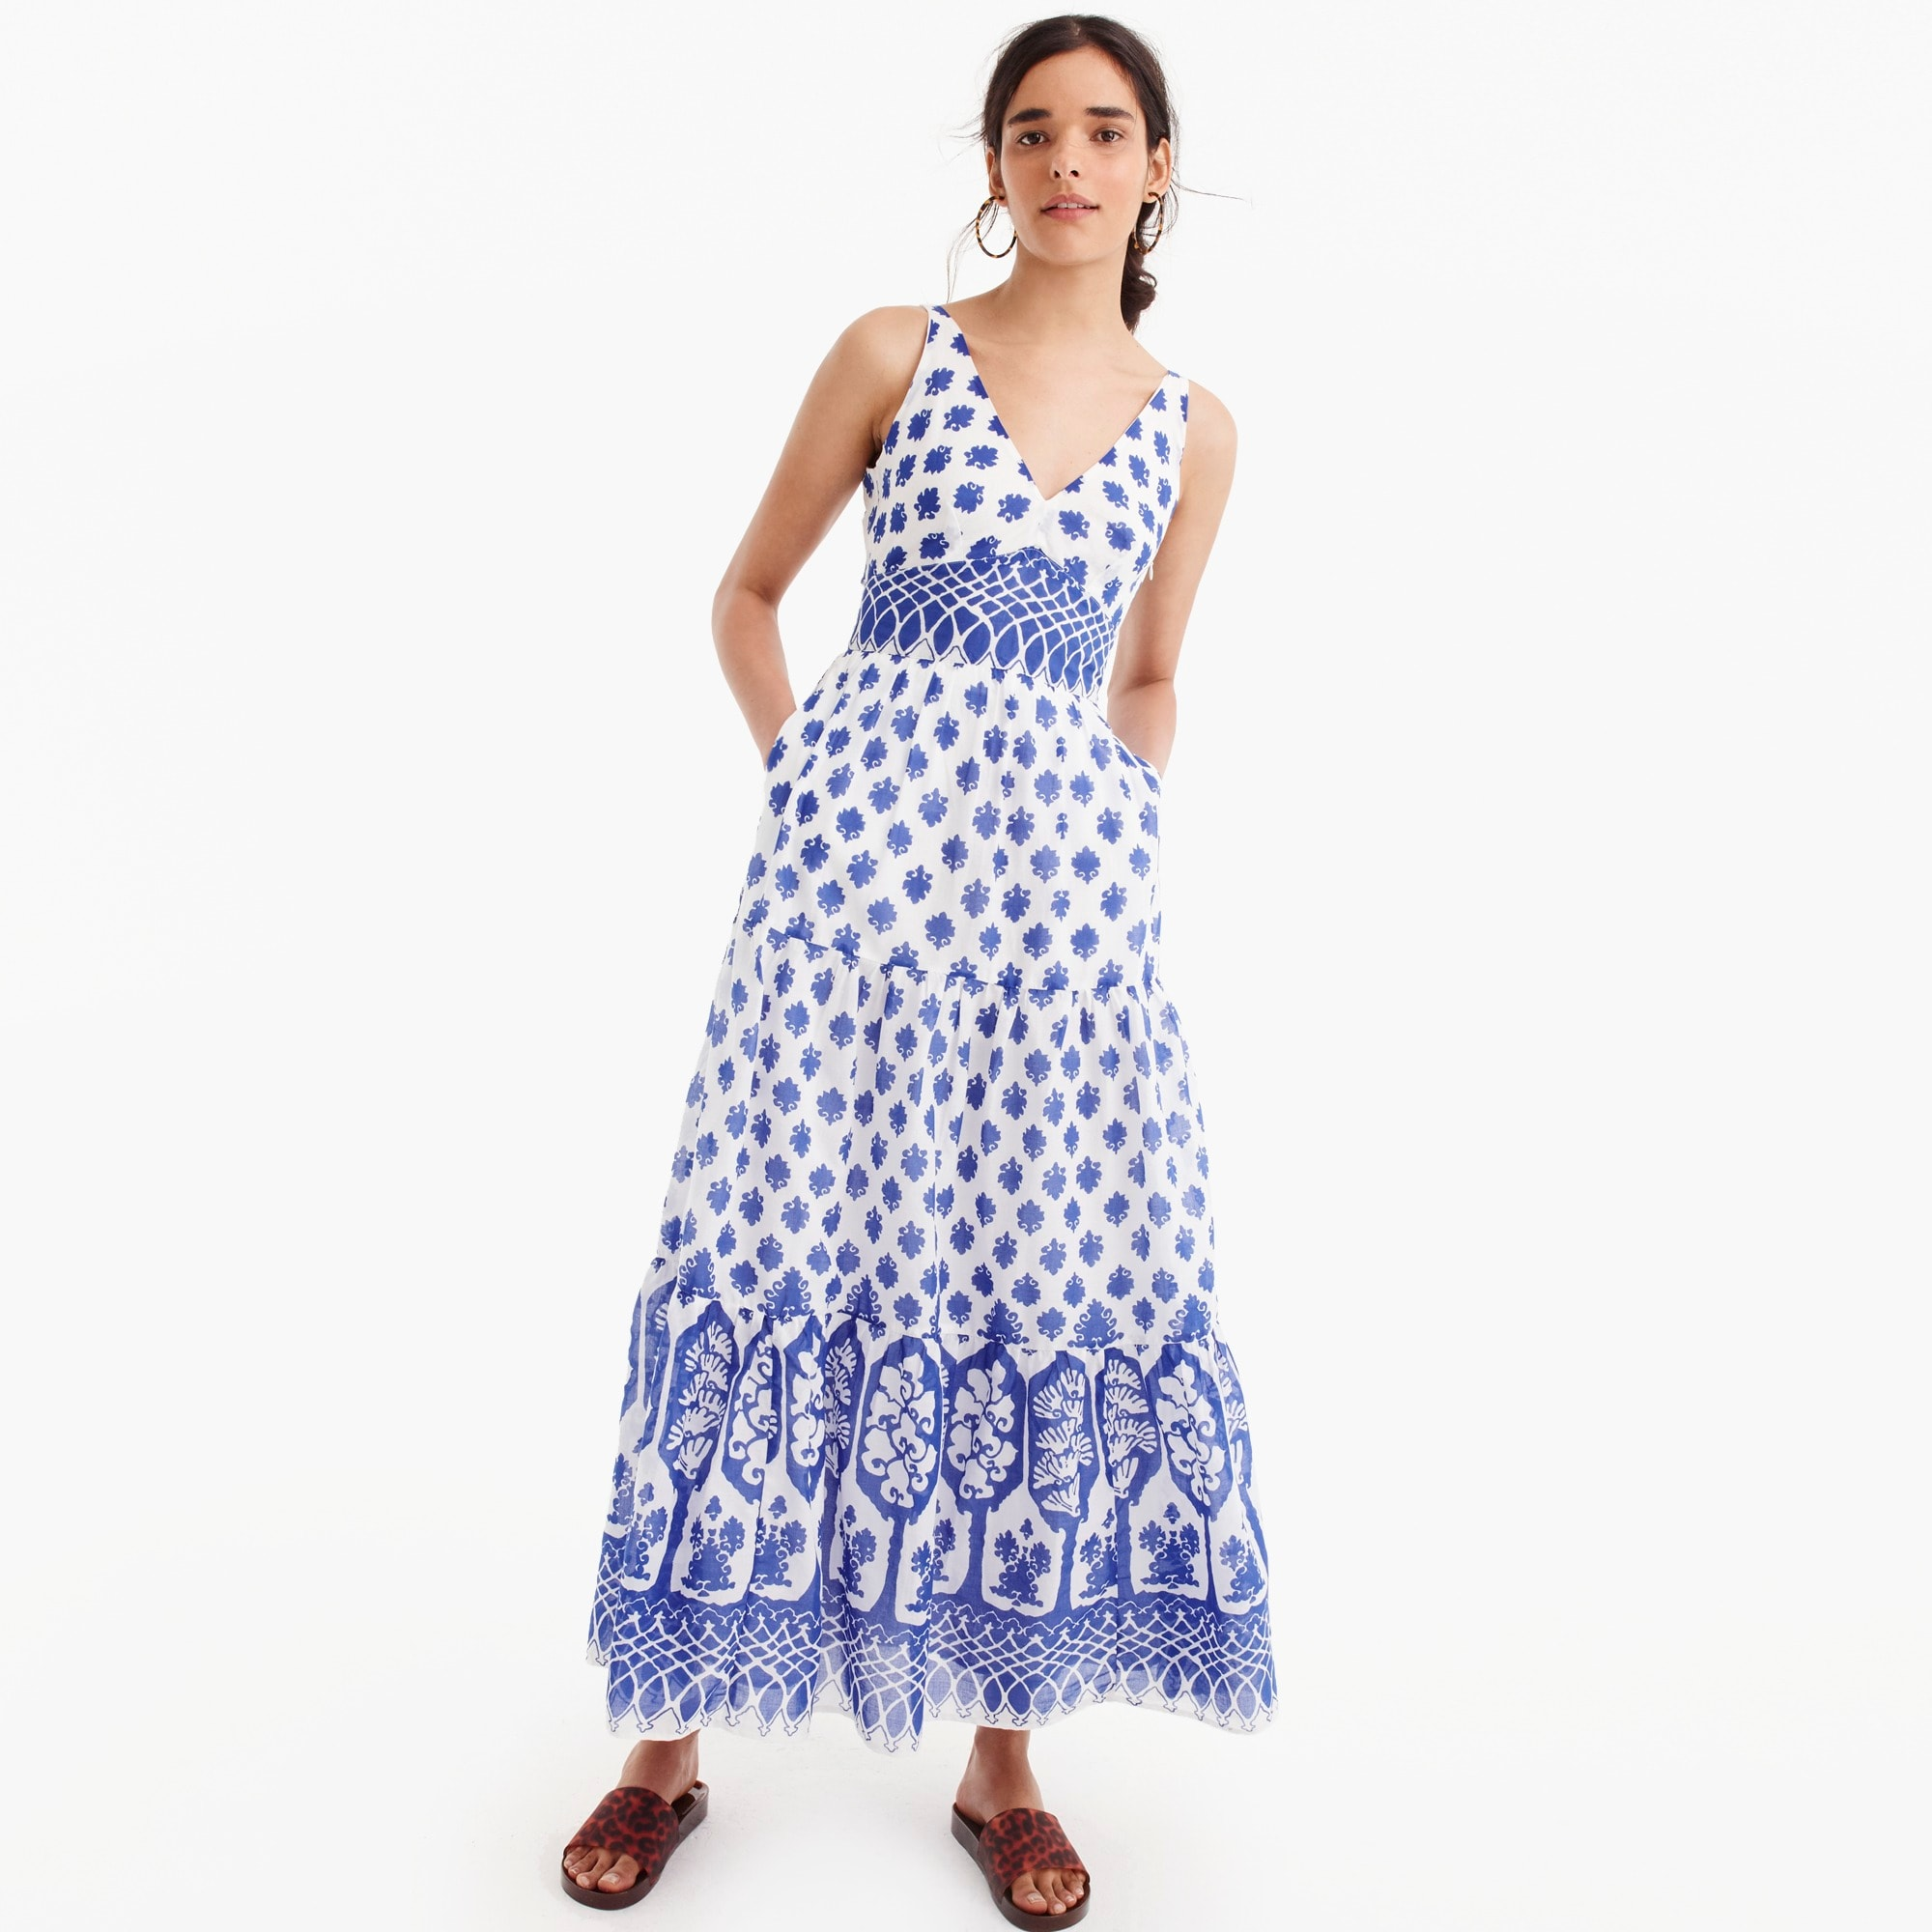 women's v-neck maxi dress in block print - women's dresses